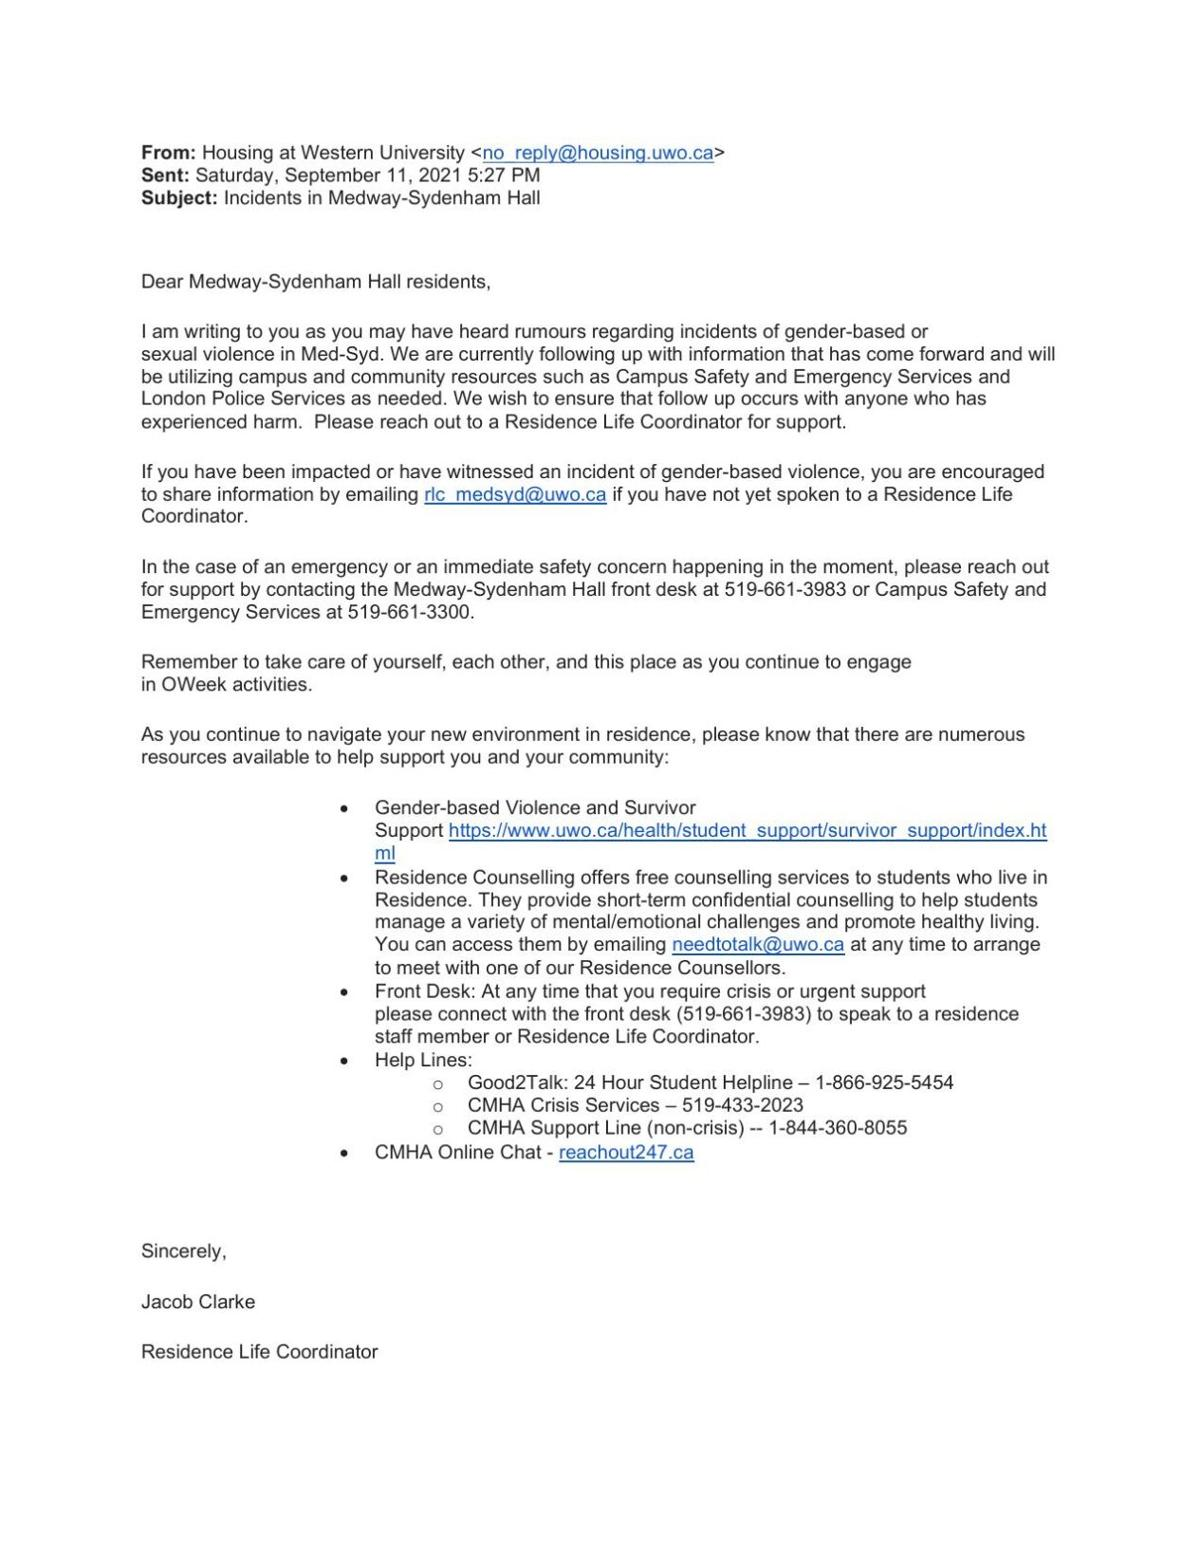 Email to Med-Syd residents